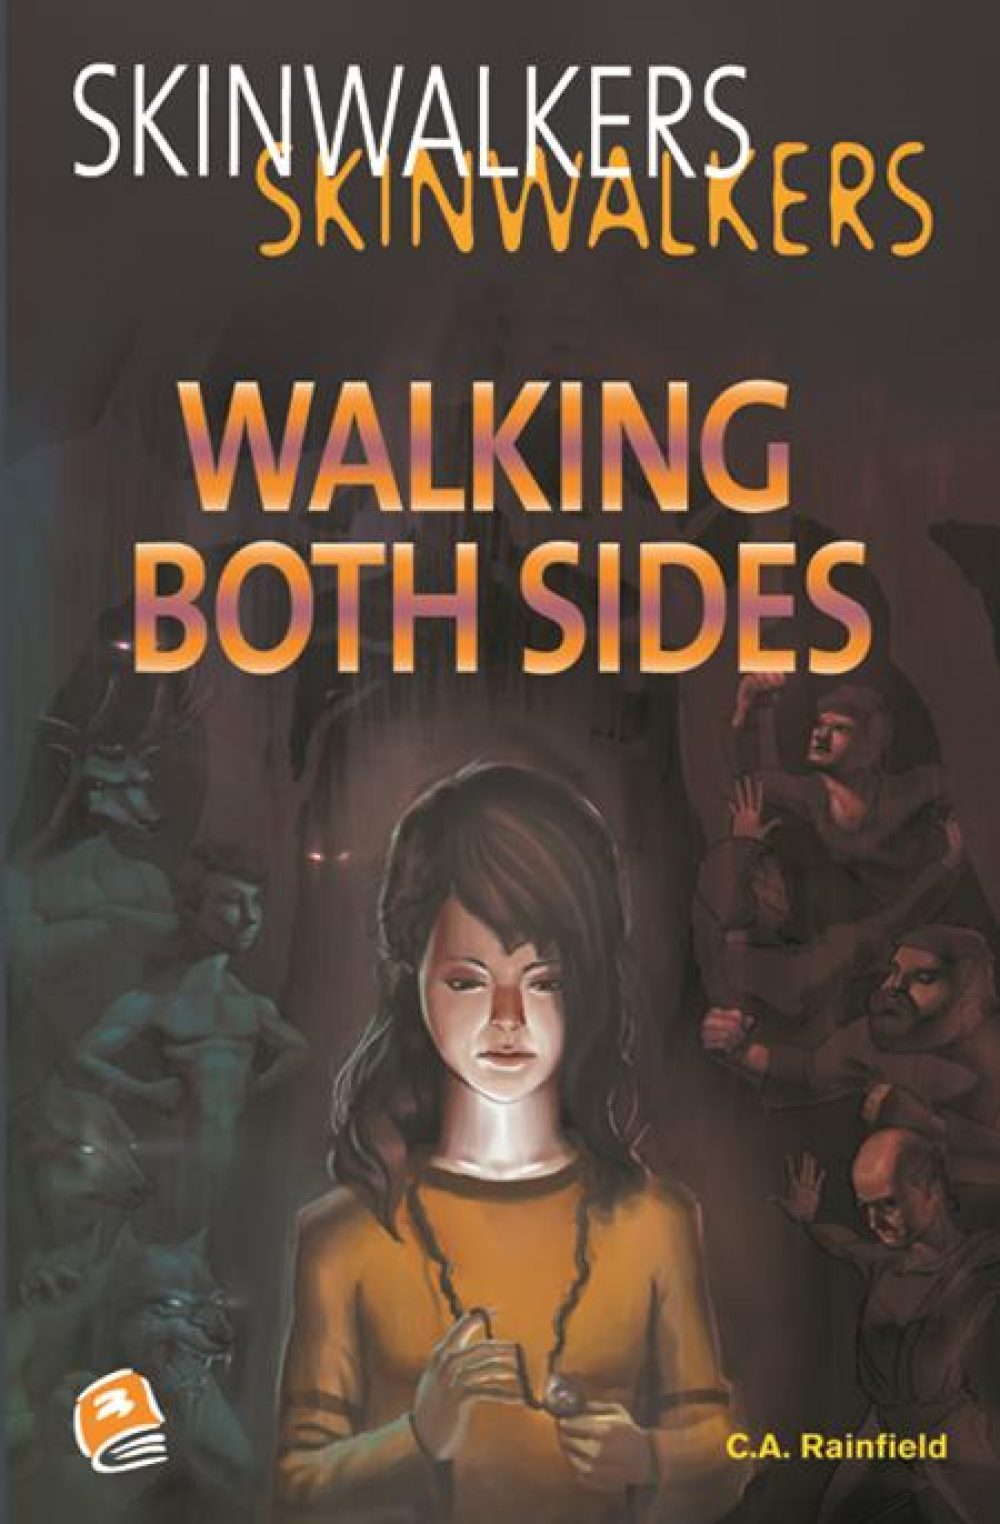 Skinwalkers: Walking Both Sides